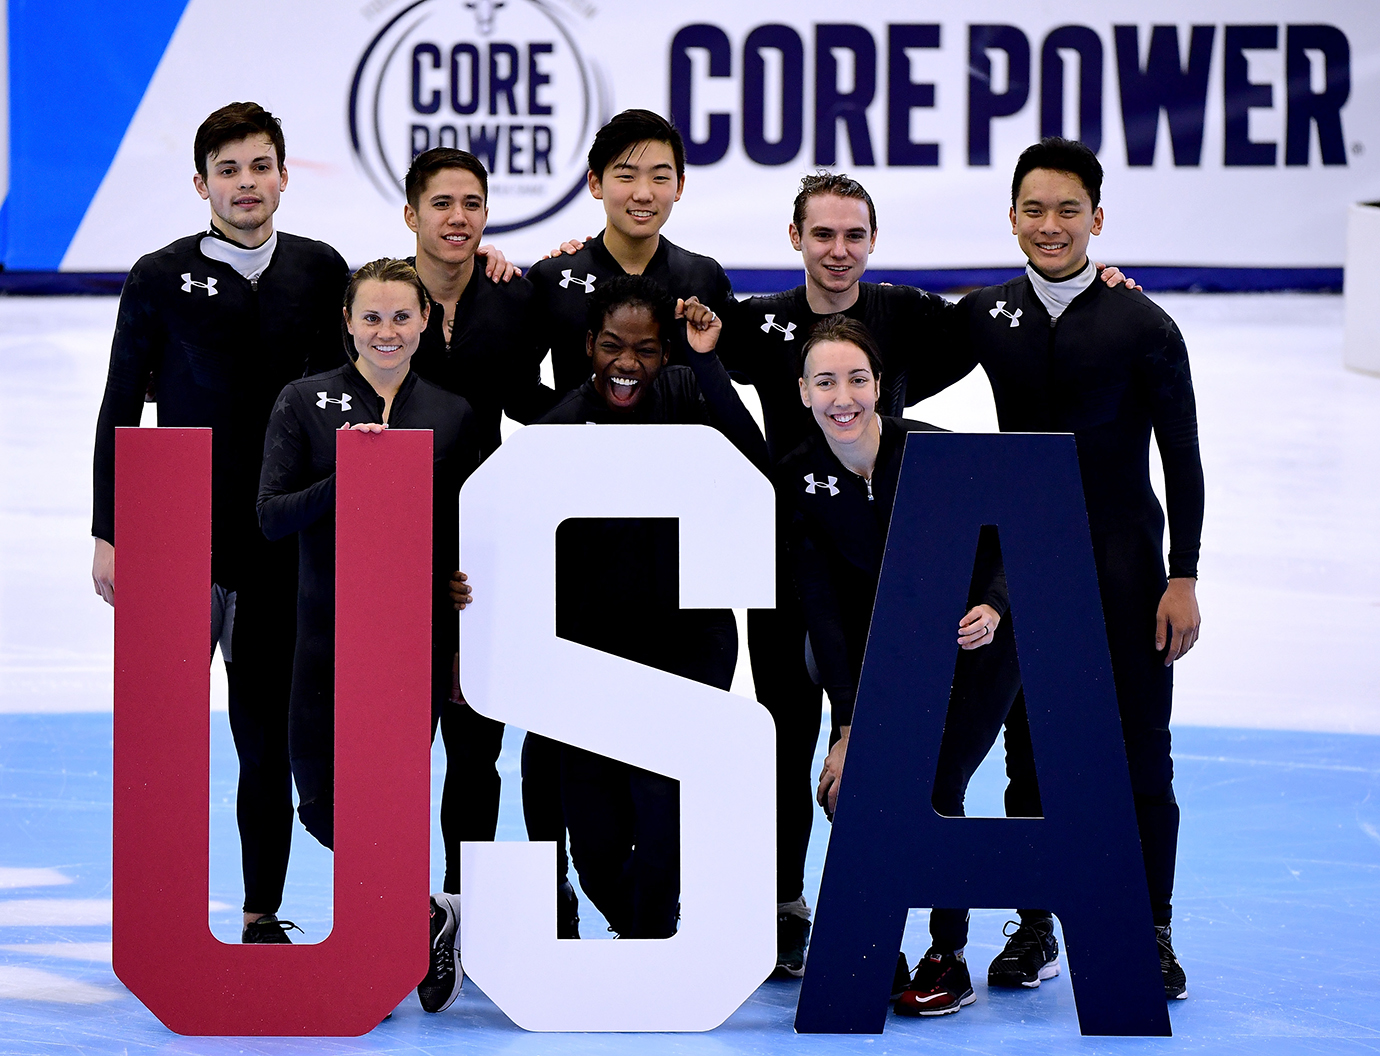 From left to right: John-Henry Krueger, Jessica Kooreman, J.R. Celski, Maame Biney, Thomas Insuk Hong, Lana Gehring, Ryan Pivirotto and Aaron Tran posing for a photo during the 2018 U.S. Speedskating Short Track Olympic Team Trials at the Utah Olympic Oval on December 17, 2017 in Salt Lake City, Utah.